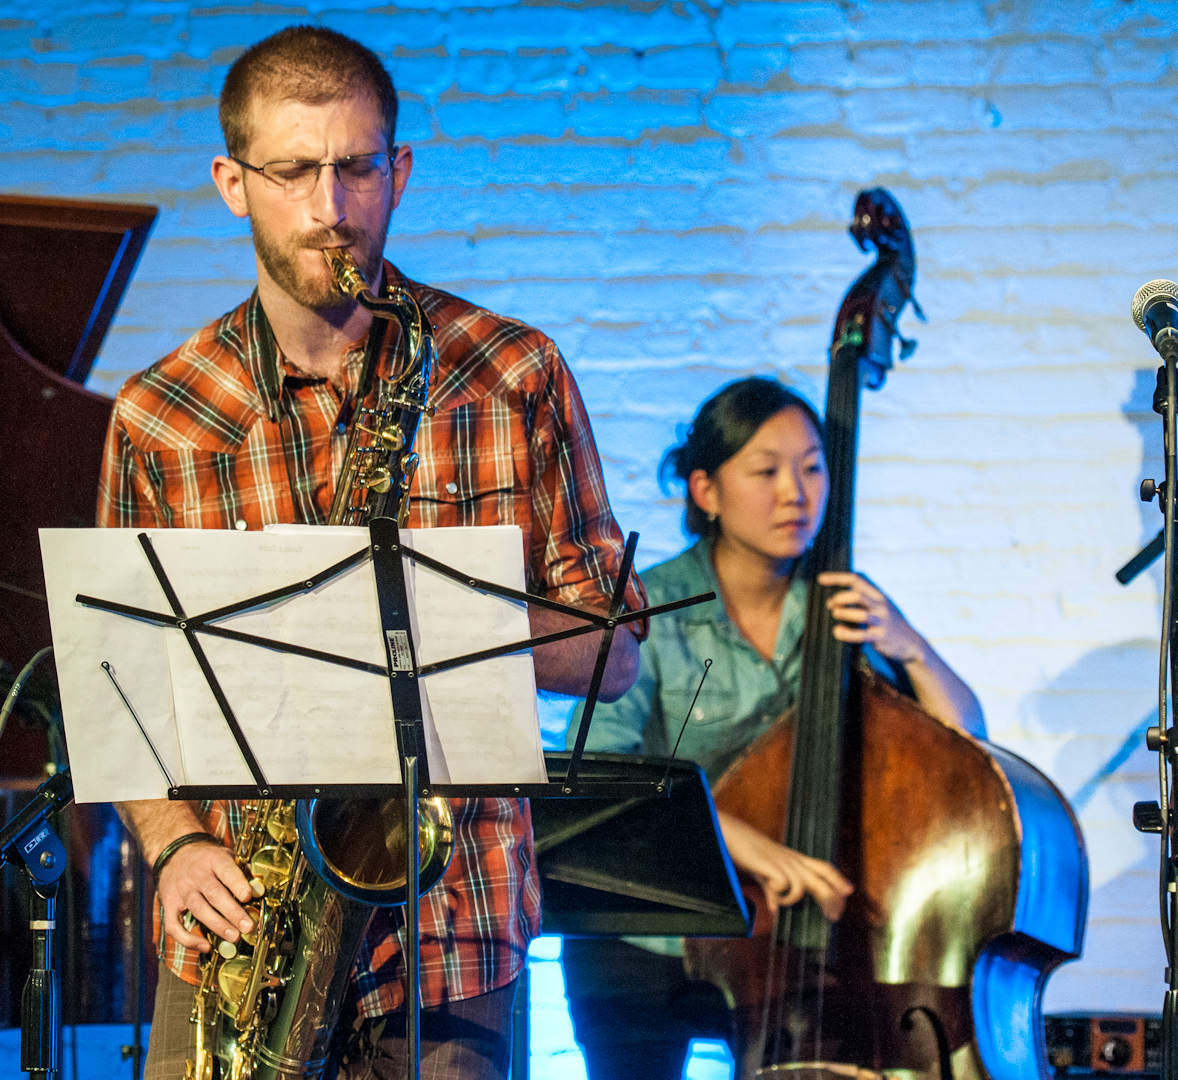 Matt Marantz and Linda Oh with Evan Weiss at Inner Circle Music Festival at Shapeshifter Lab